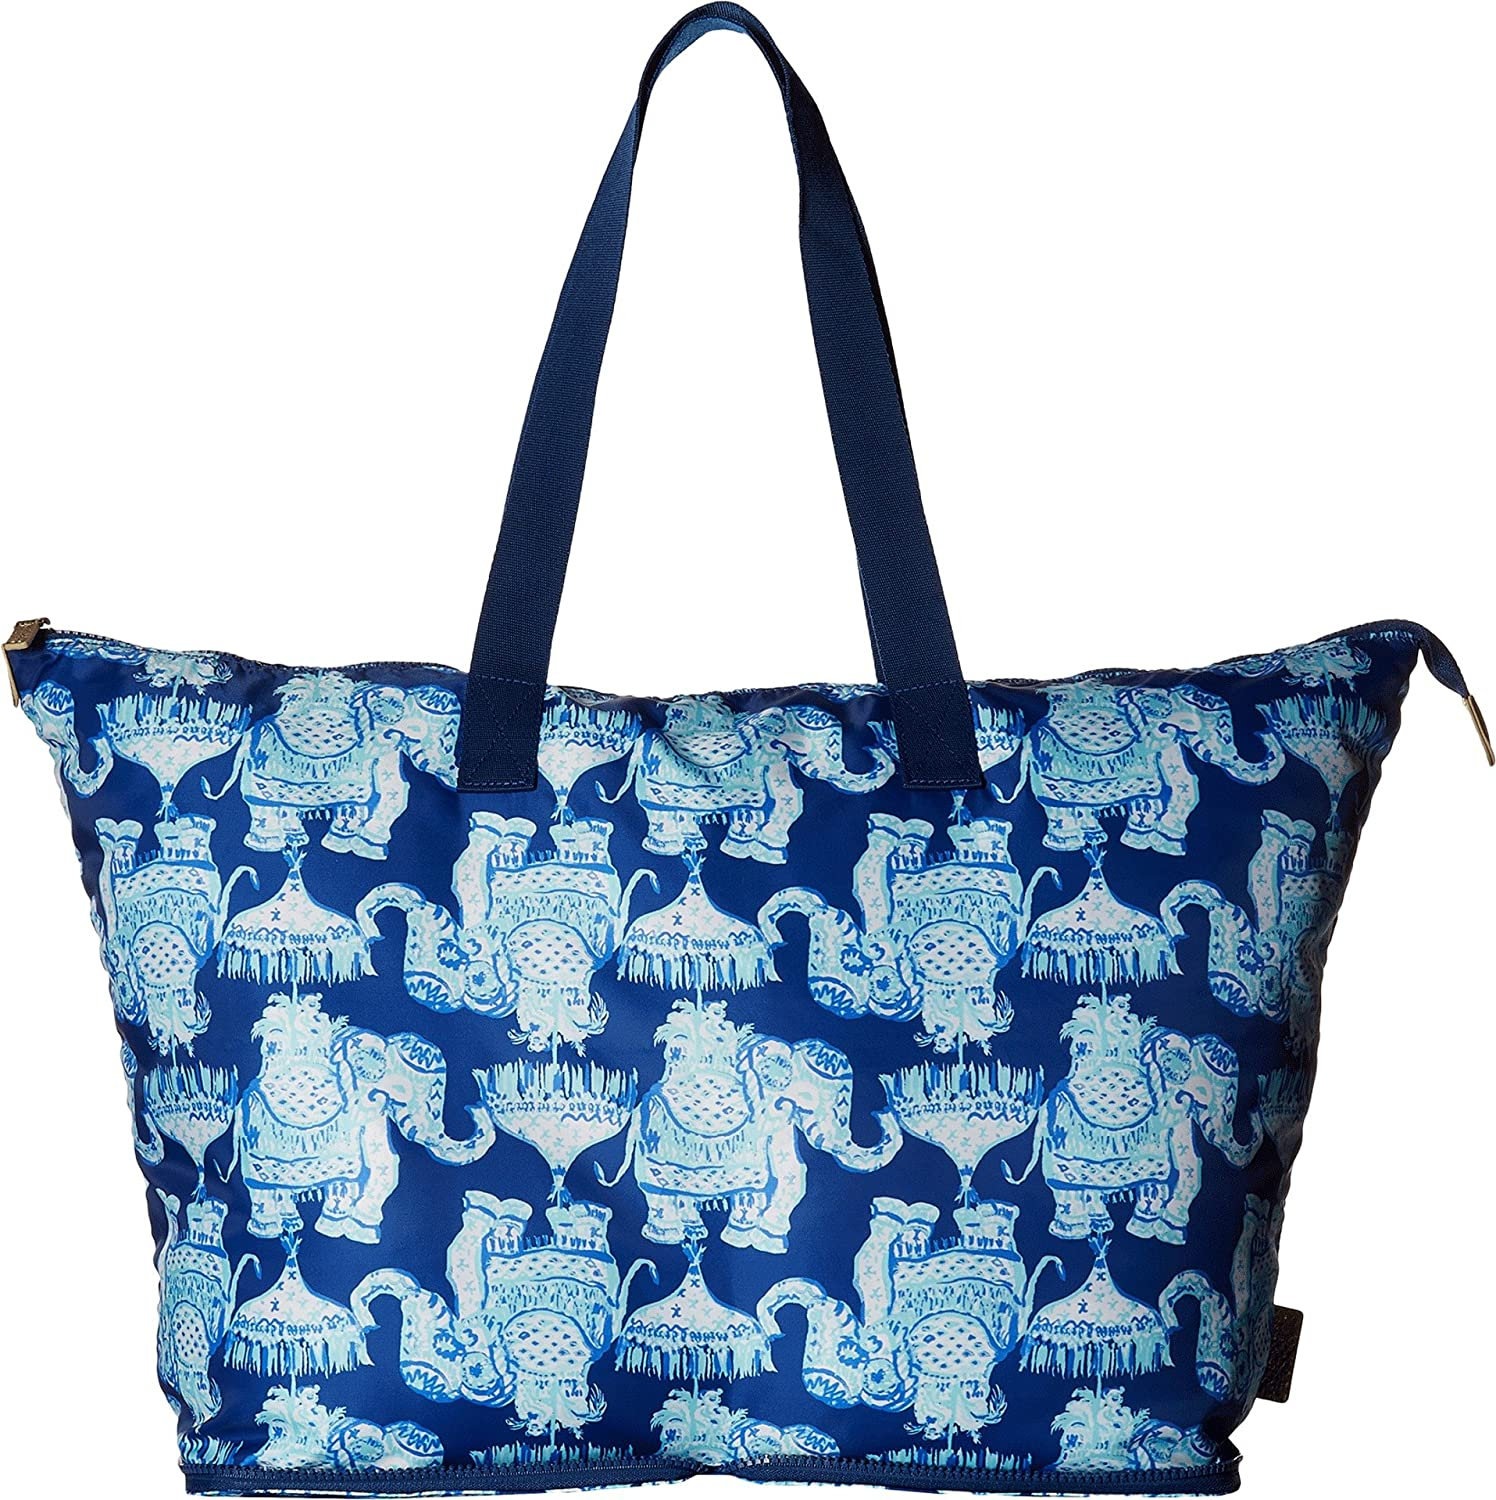 04e183df83 Amazon.com  Lilly Pulitzer Women s Getaway Packable Tote Deep Indigo Joy  Ride One Size  Shoes